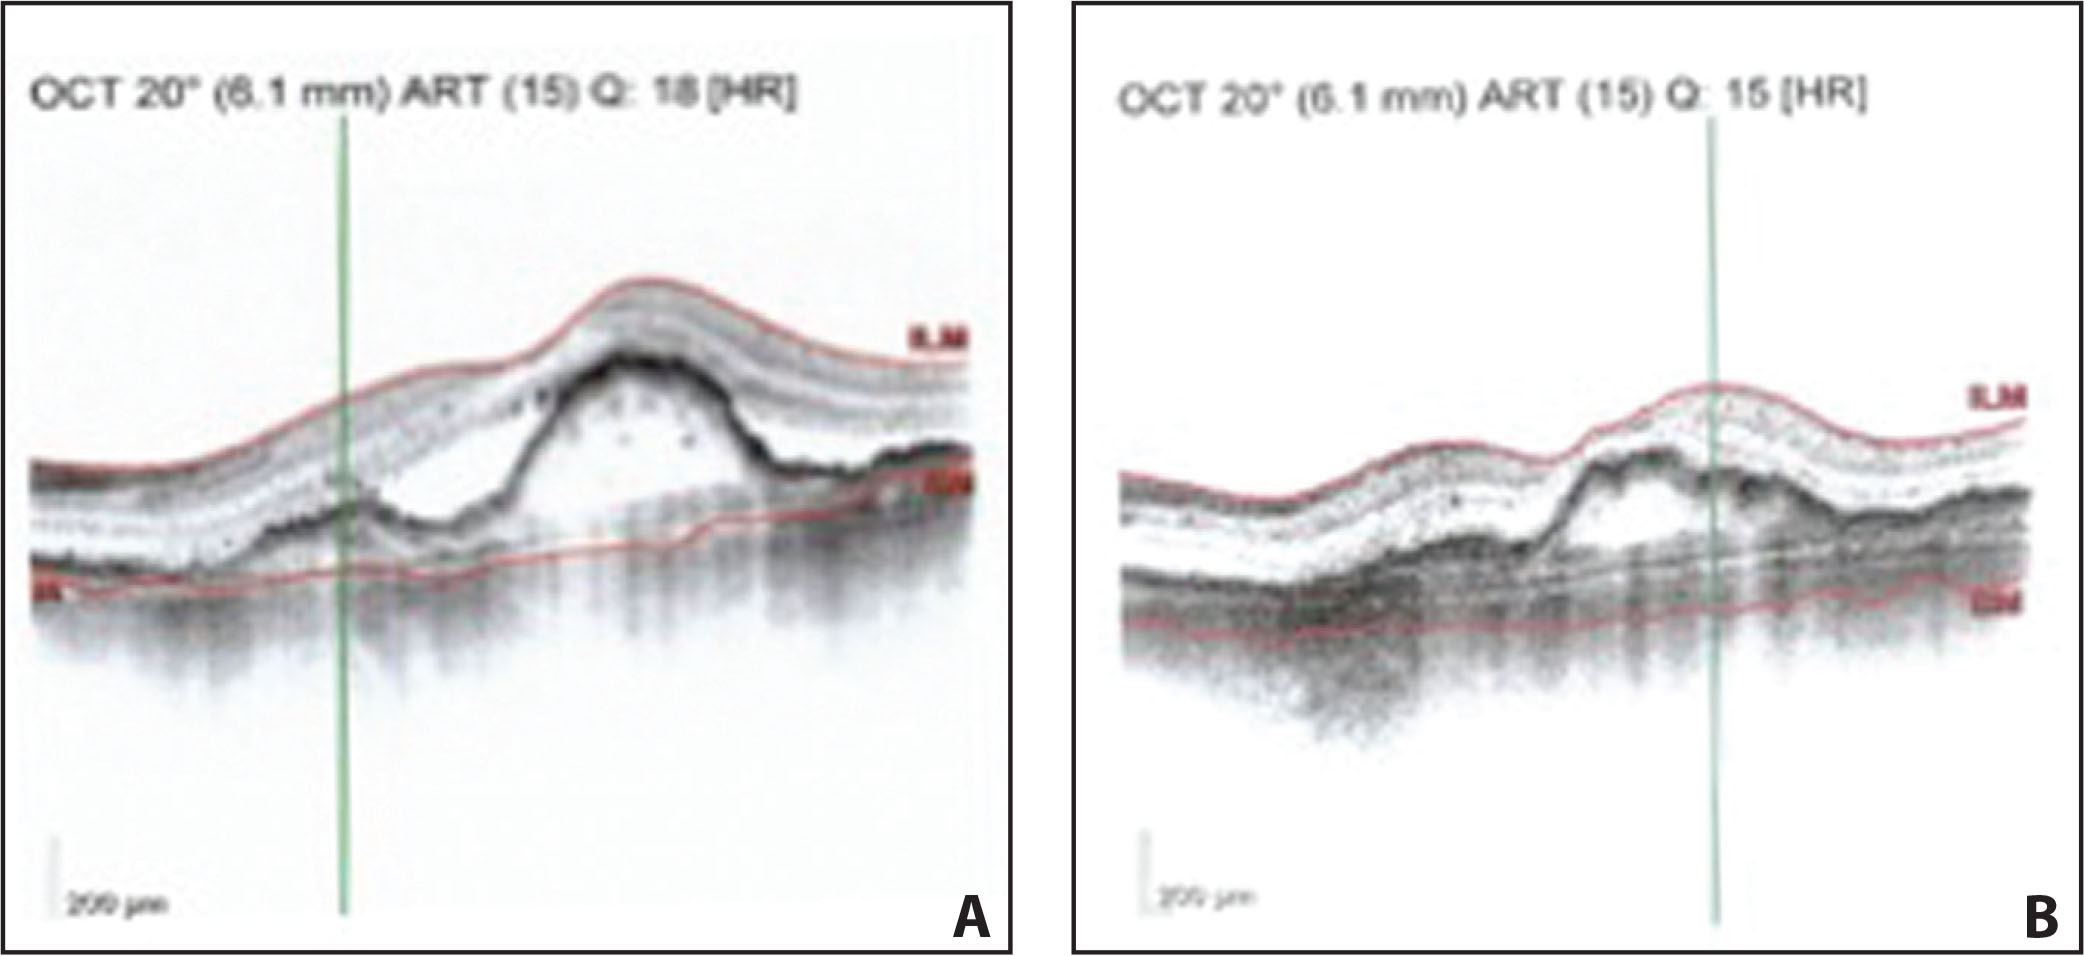 Optical coherence tomography resolution of subretinal fluid and flattening of pigment epithelial detachment in a patient before (A) and after (B) treatment with aflibercept in patient A. Red lines indicate internal limiting membrane and Bruch's membrane as segmented by the Iowa Reference Algorithms respectively.